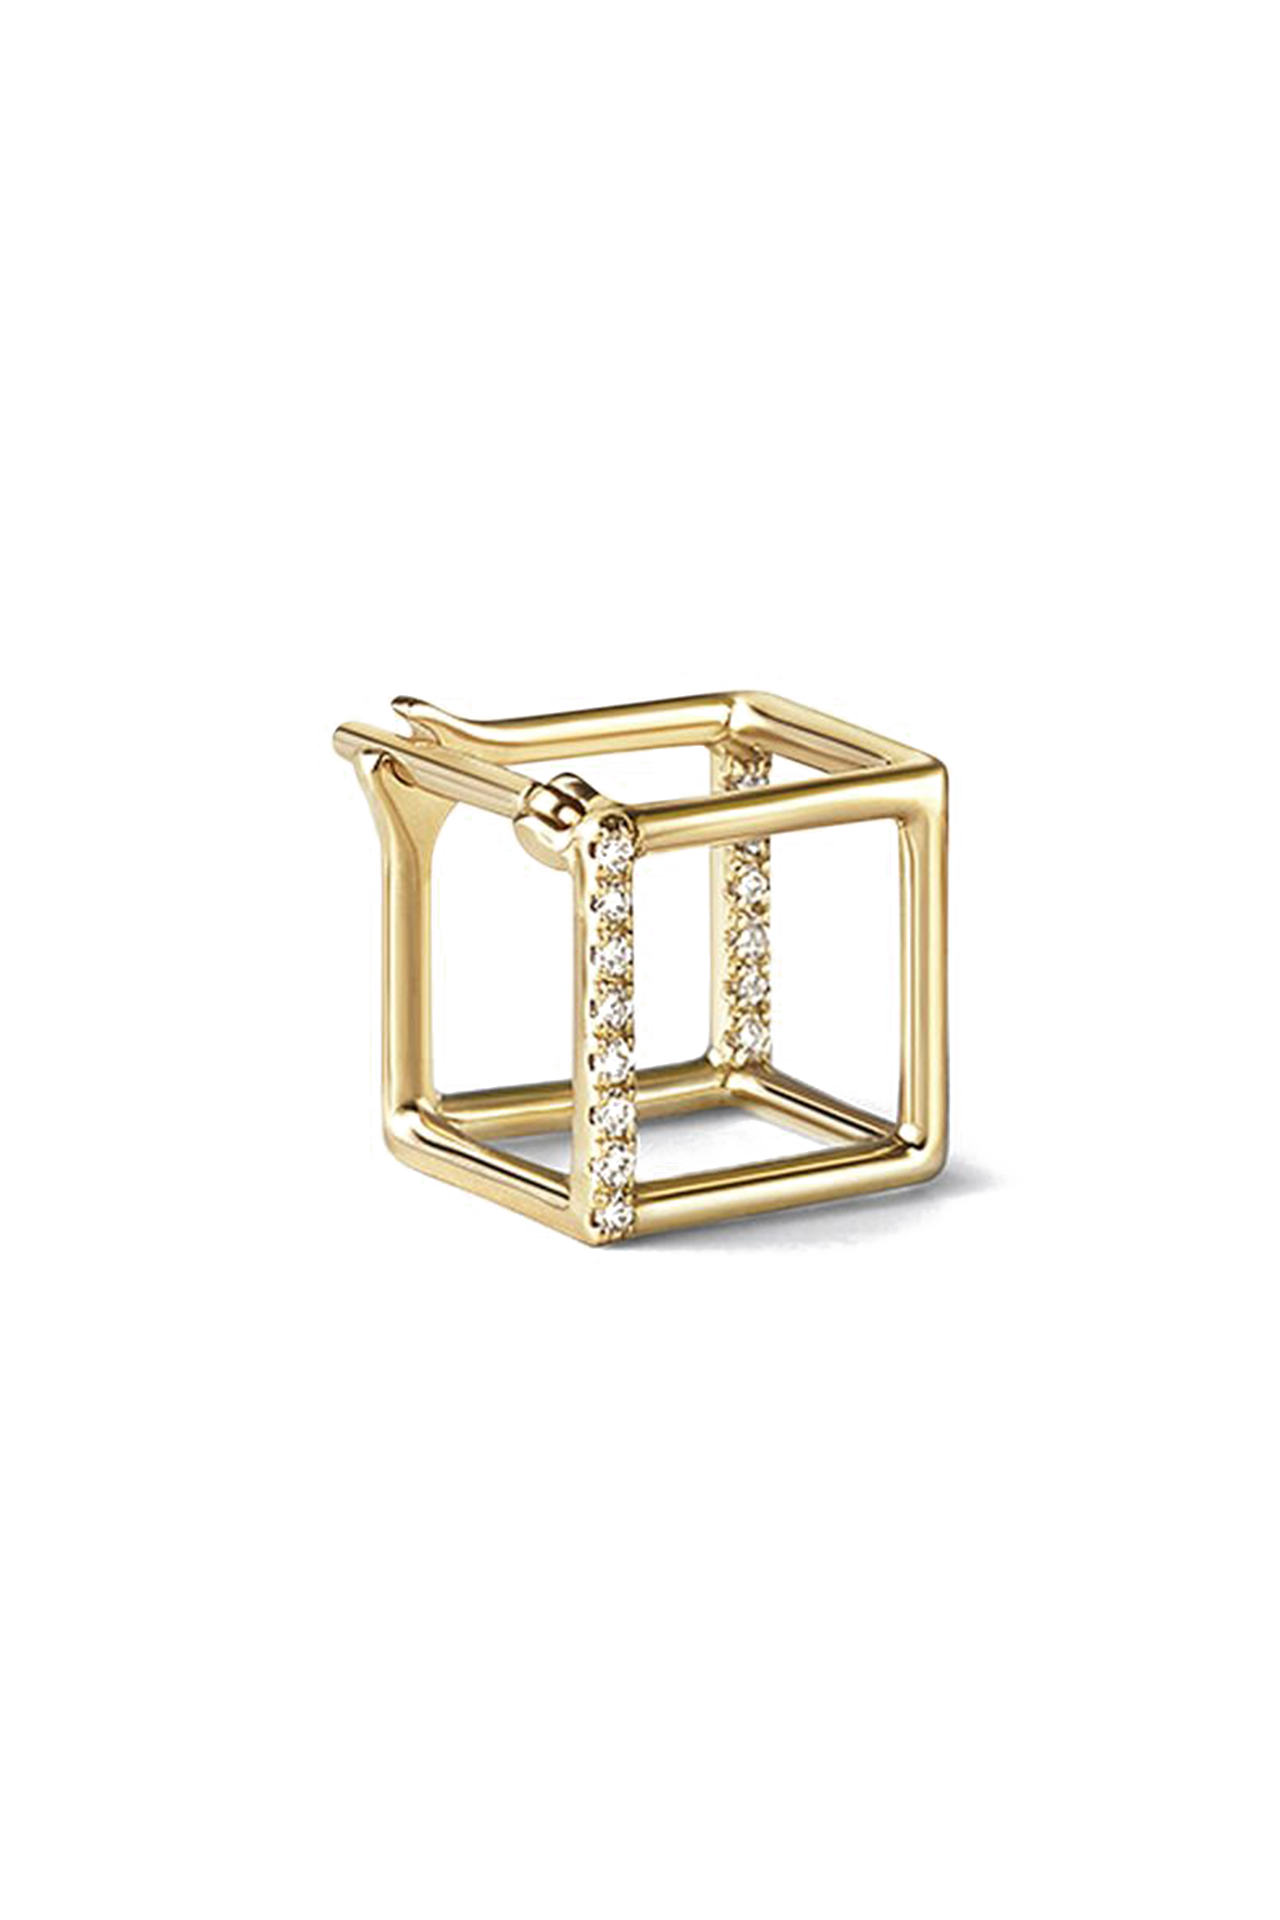 3D Diamond Square Earring